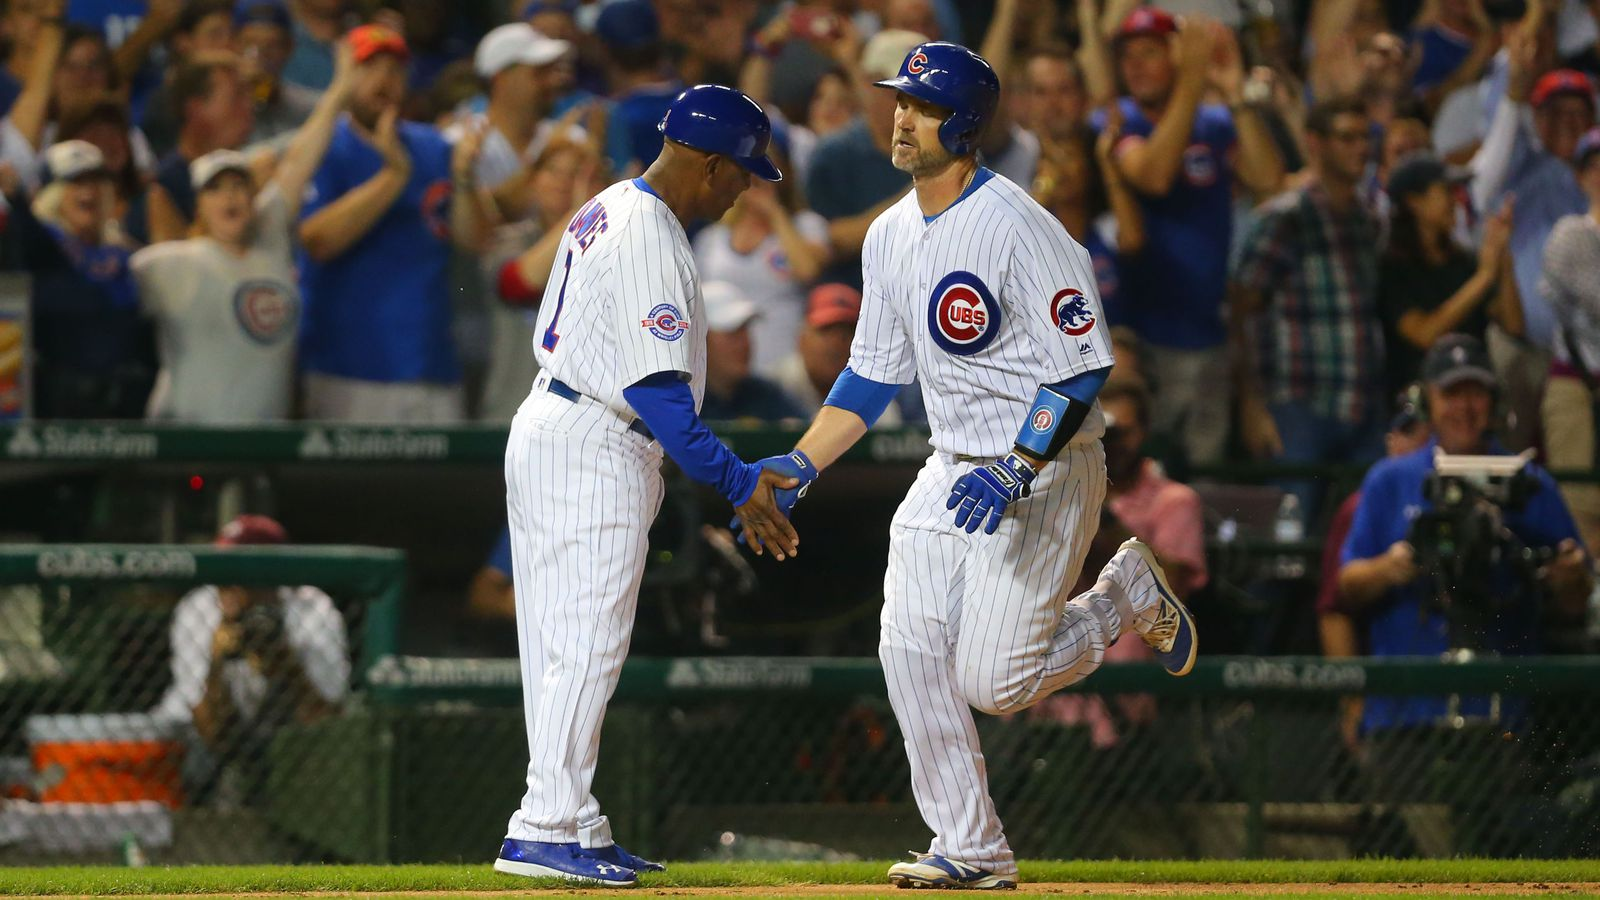 Chicago Cubs vs. Pittsburgh Pirates Preview, Monday 9/26, 6:05 CT - Bleed Cubbie Blue